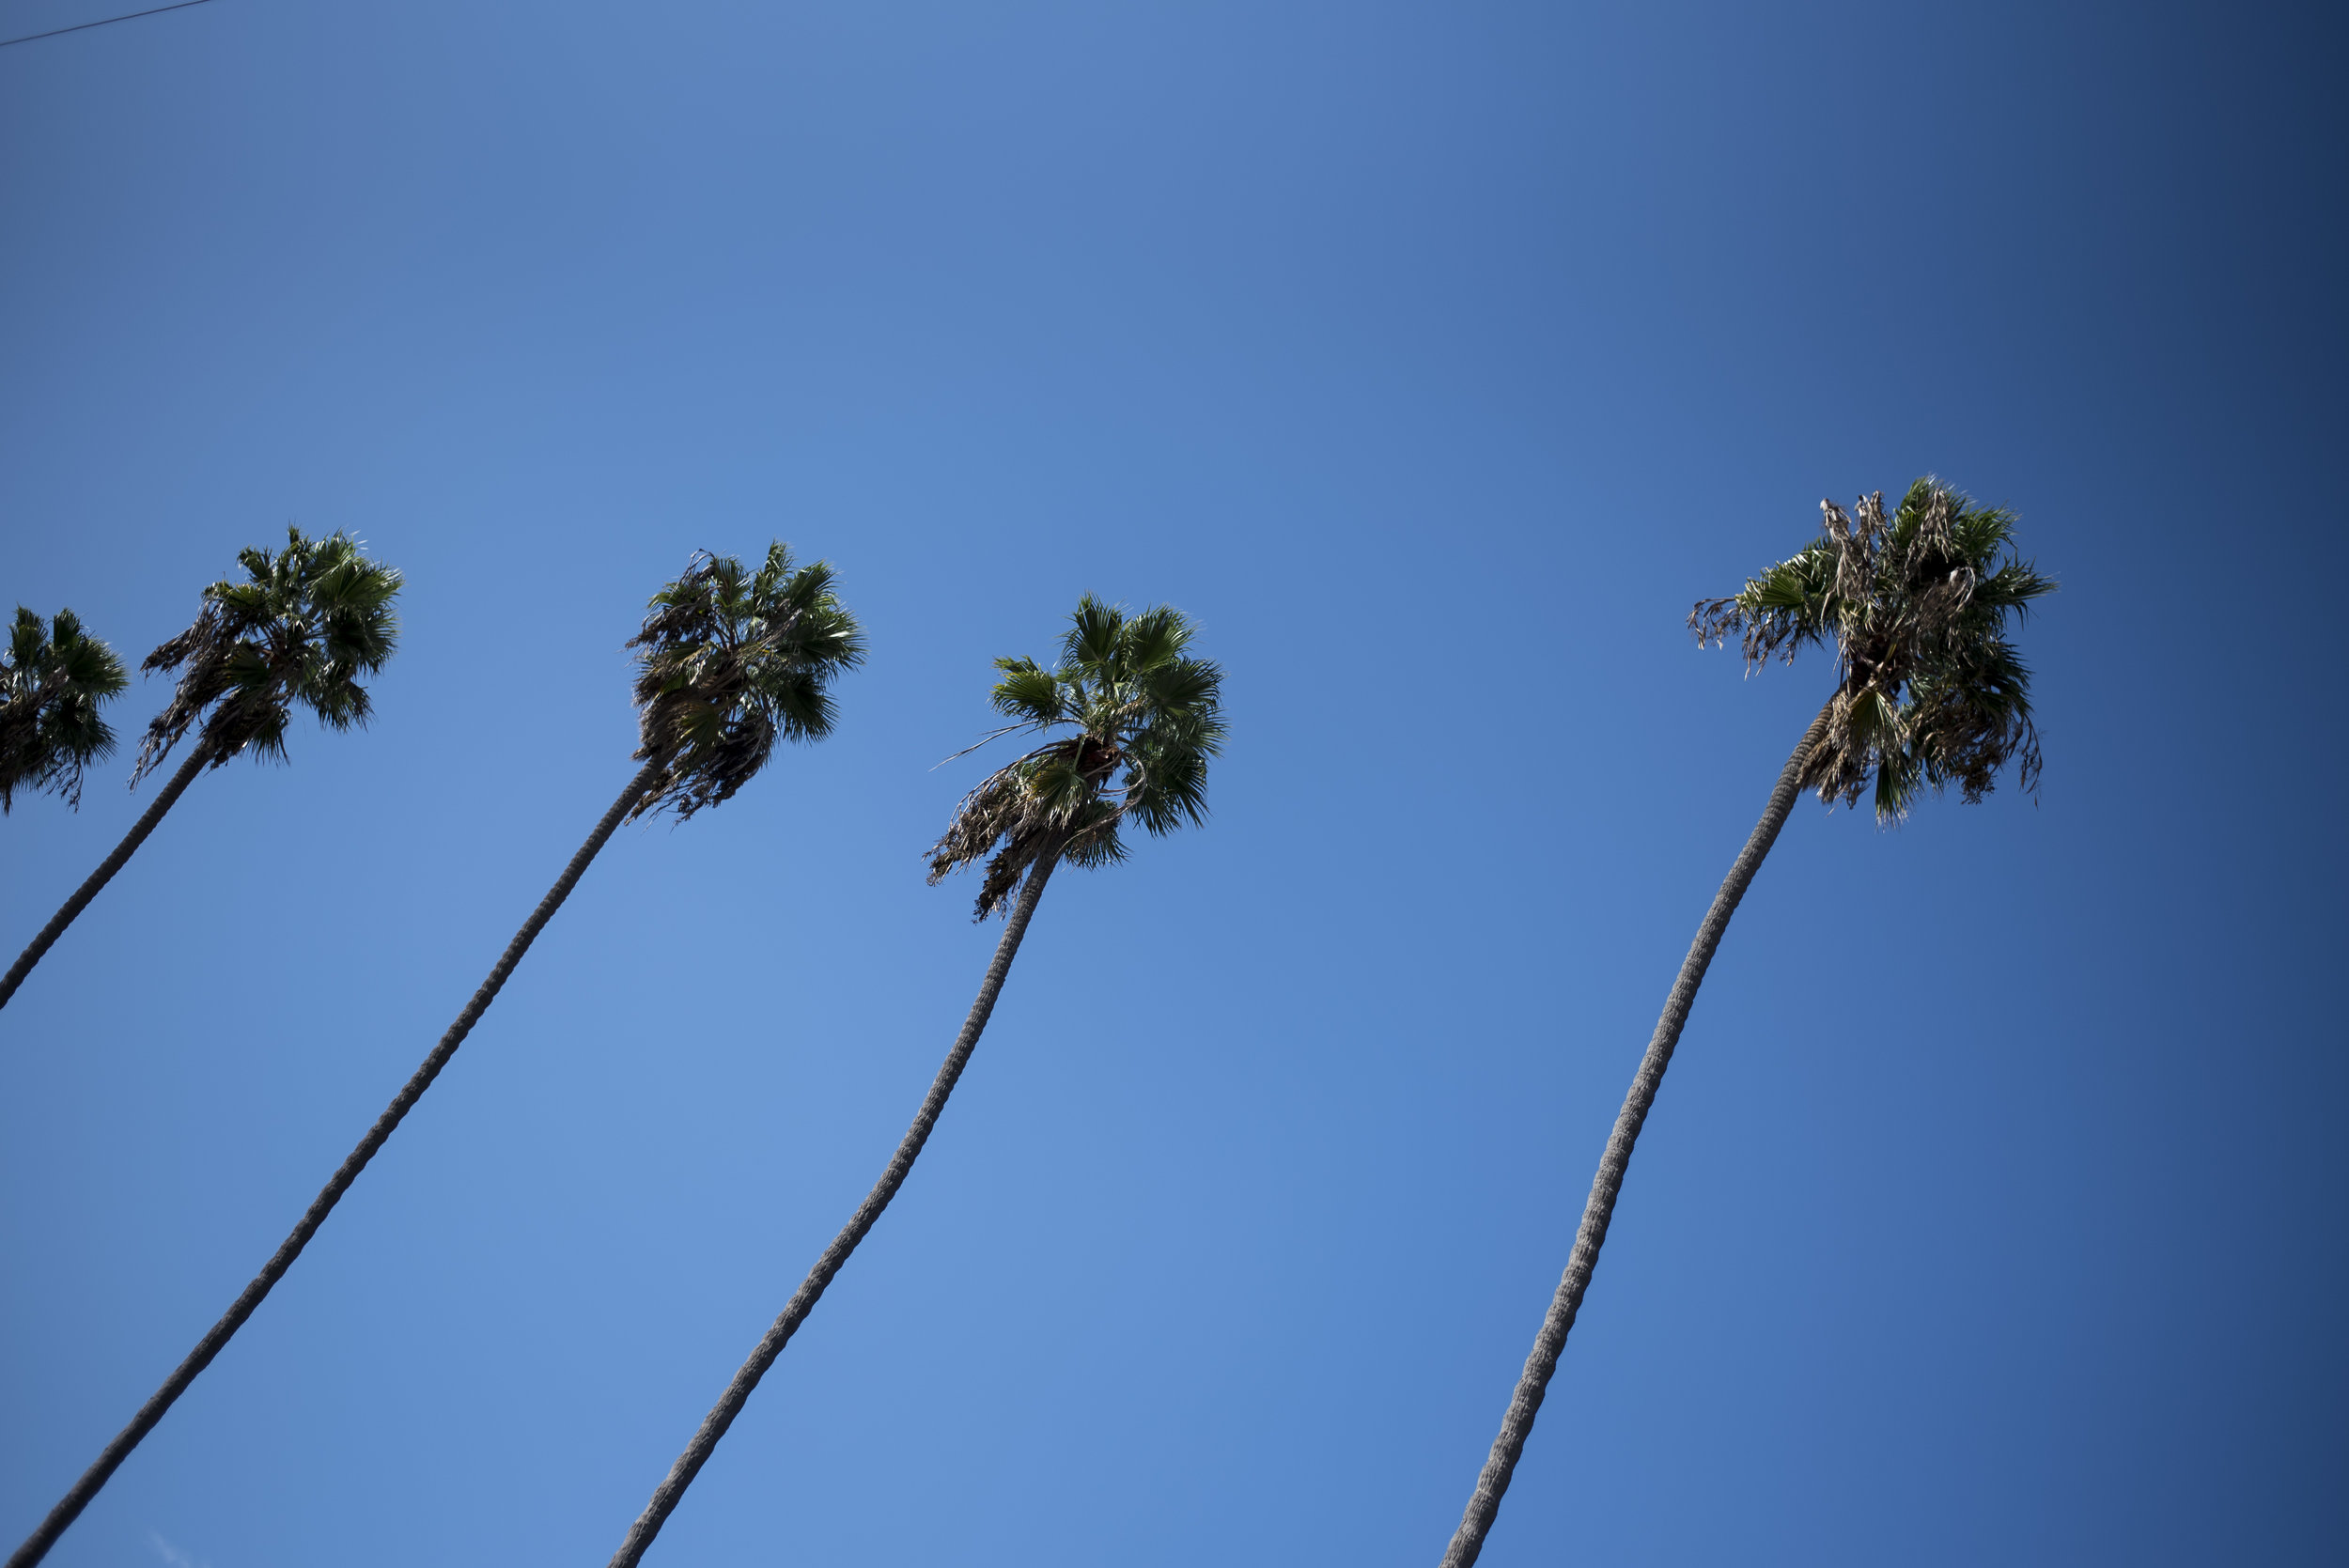 Perfectly spaced palm trees along Abbot Kinney Boulevard.